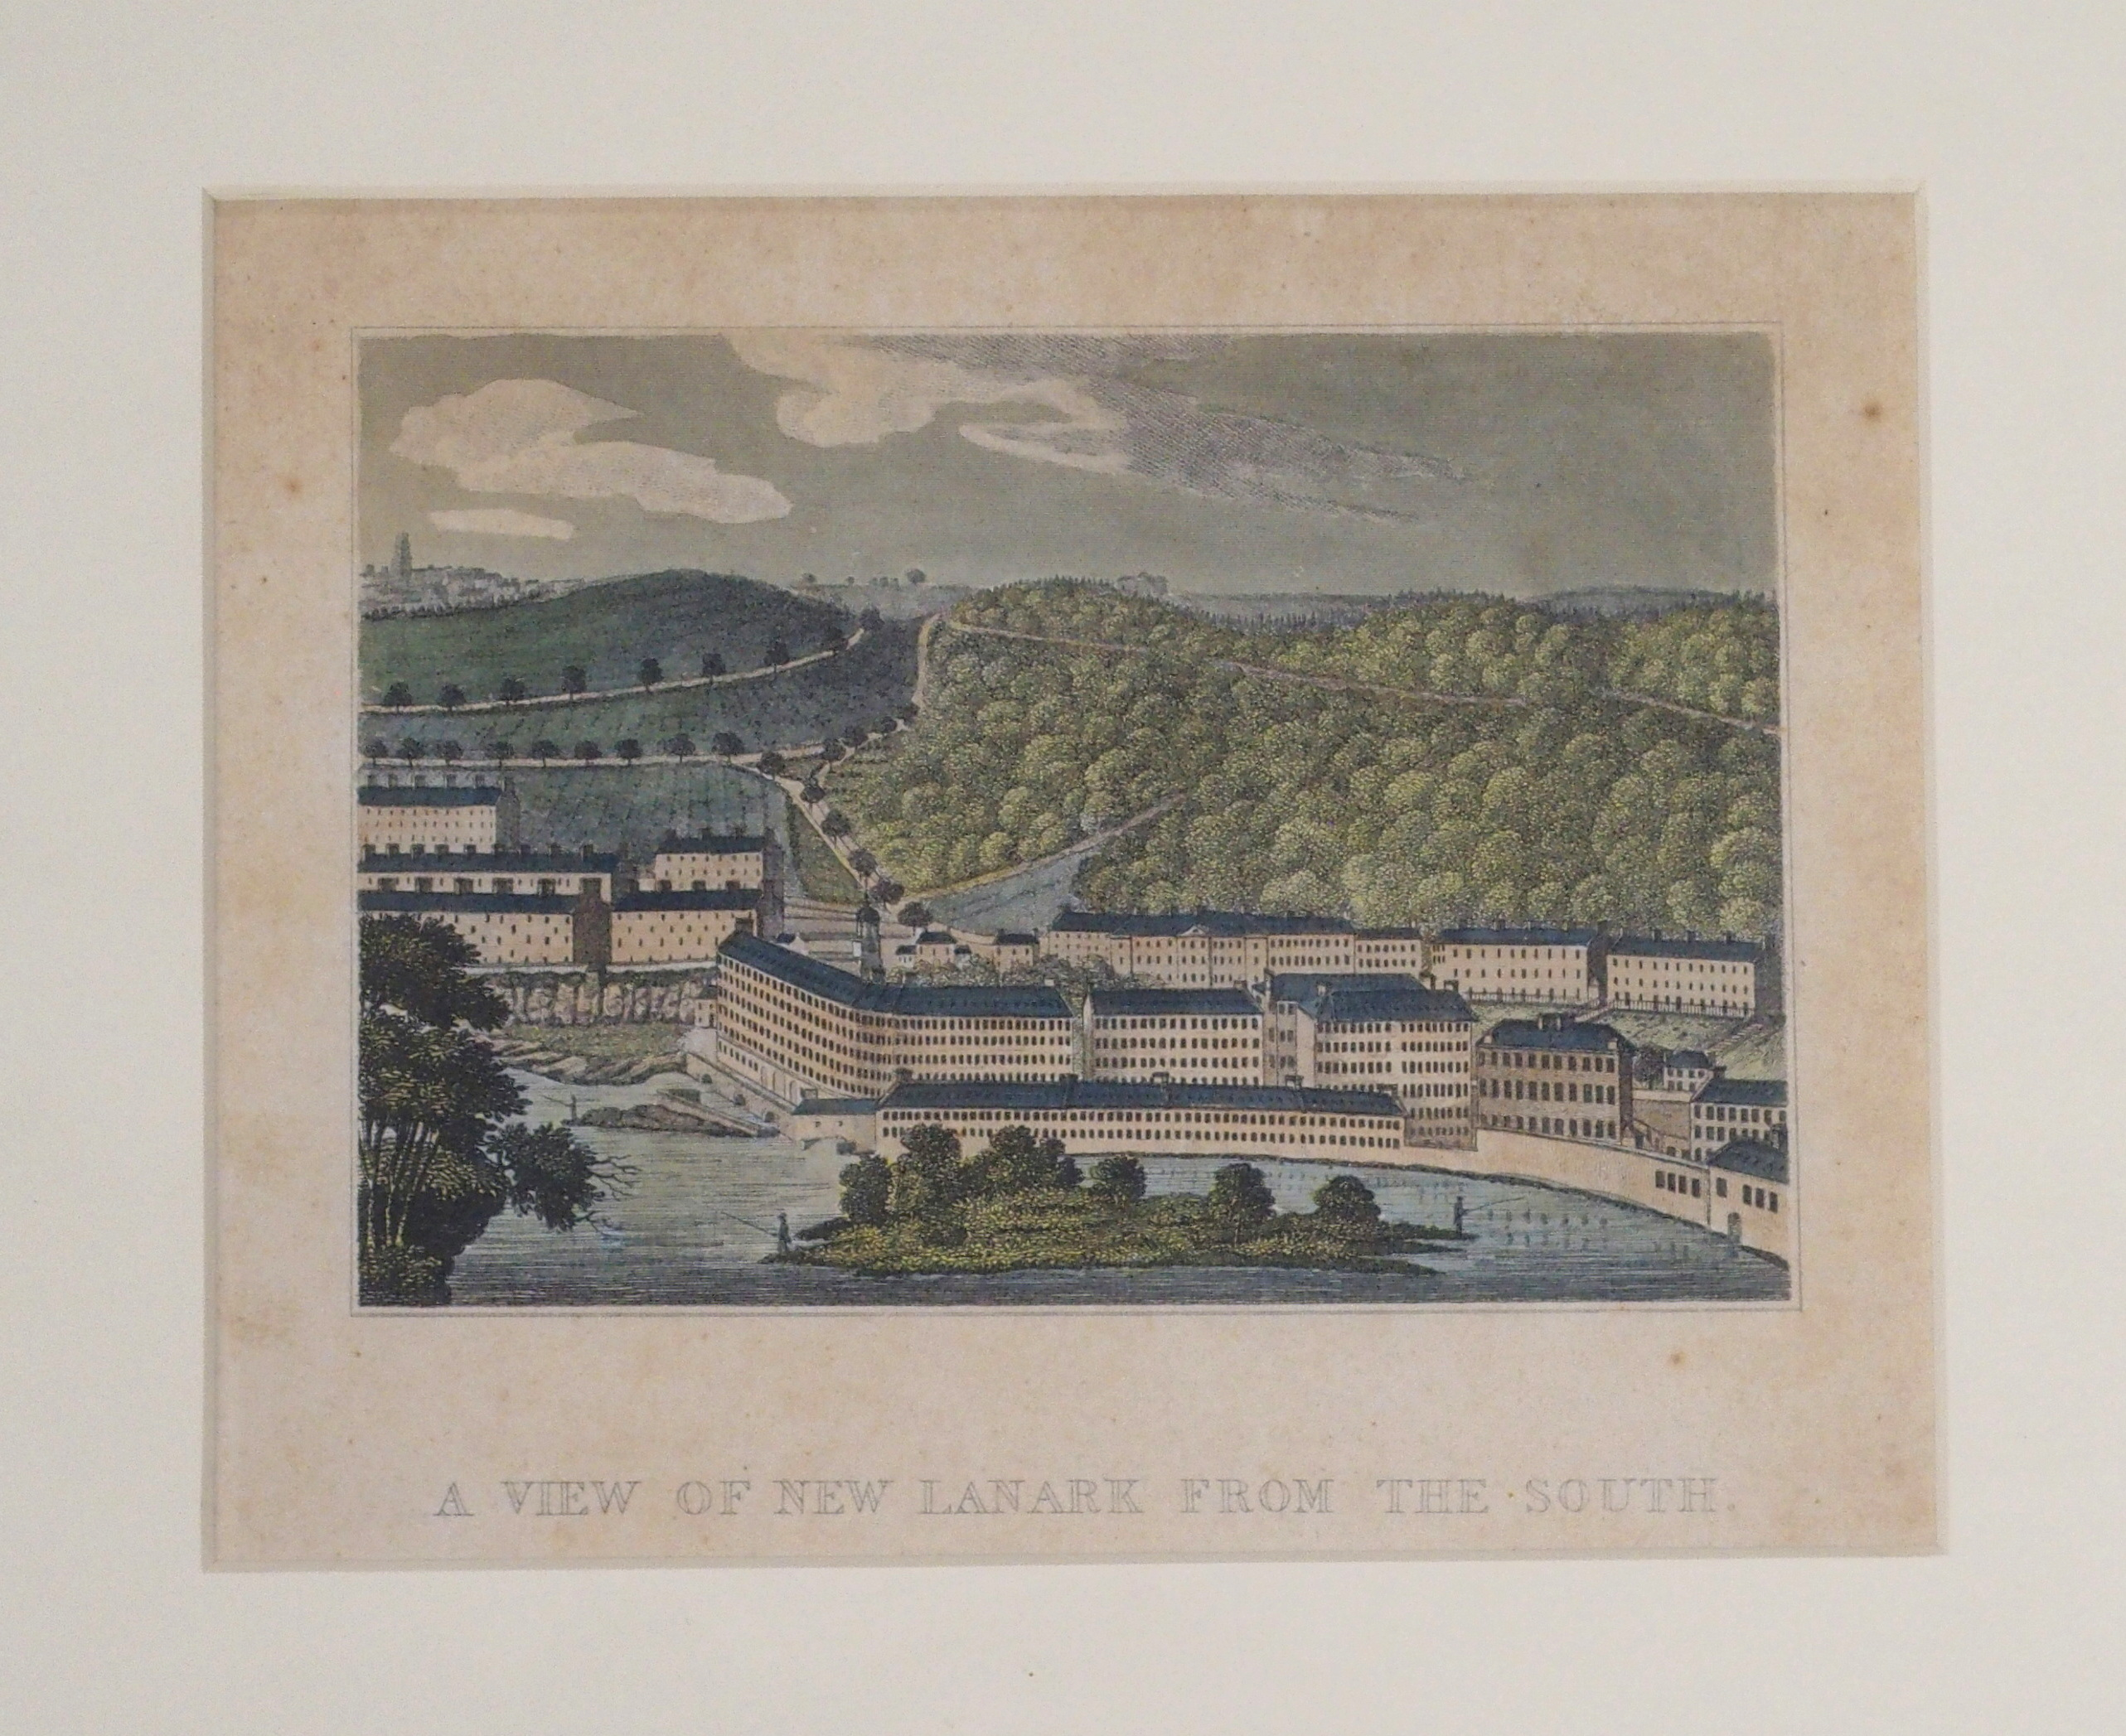 AFTER CLARK THE TOWN OF LANARK aquatint, 46 x 59cm, A View of New Lanark from the South, 14 x - Image 4 of 6